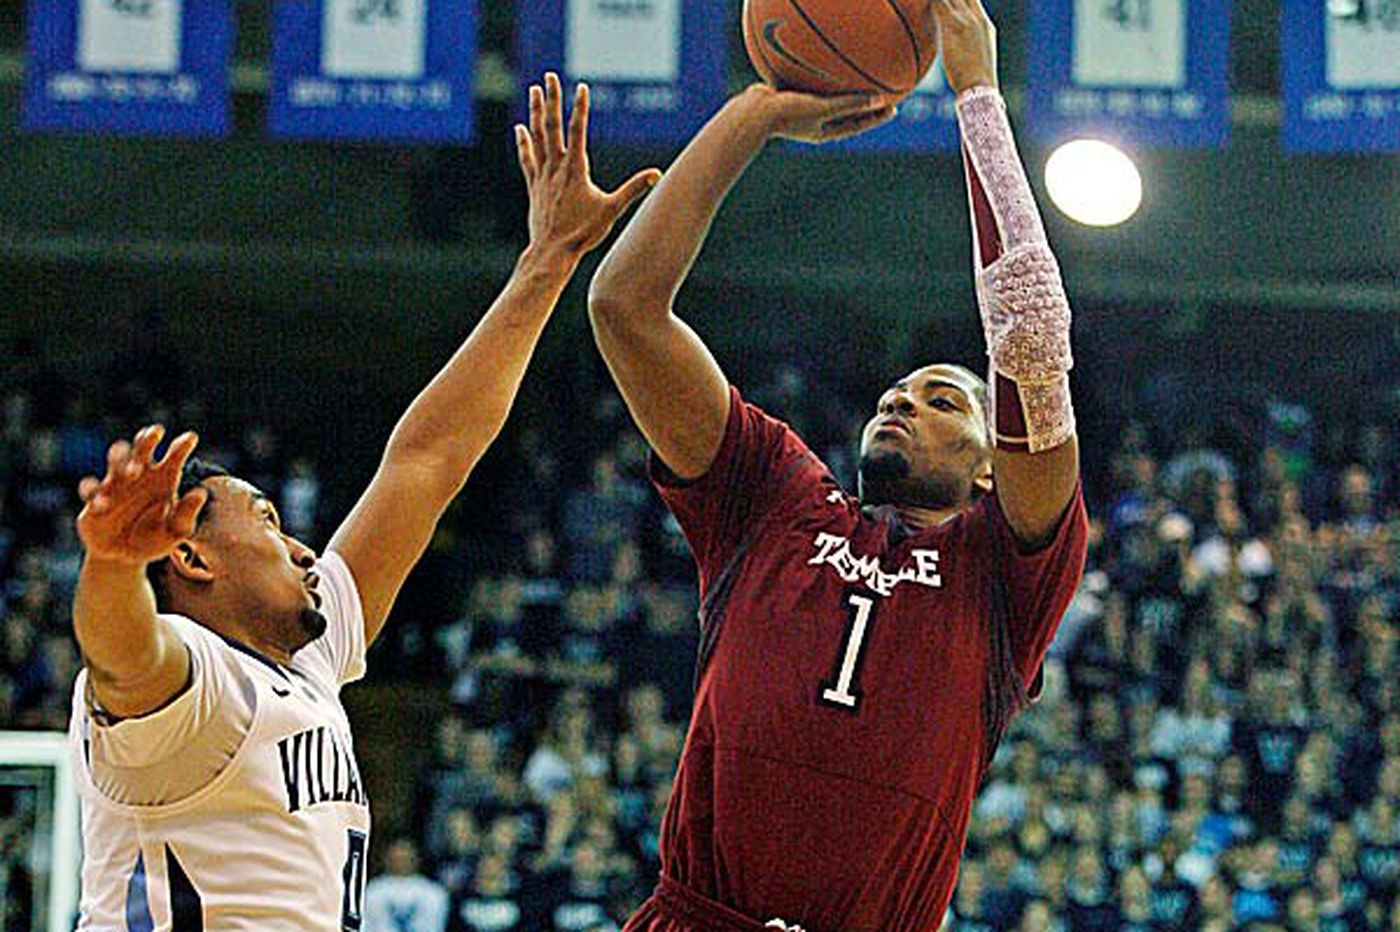 With win over Villanova, Temple shows it has arrived